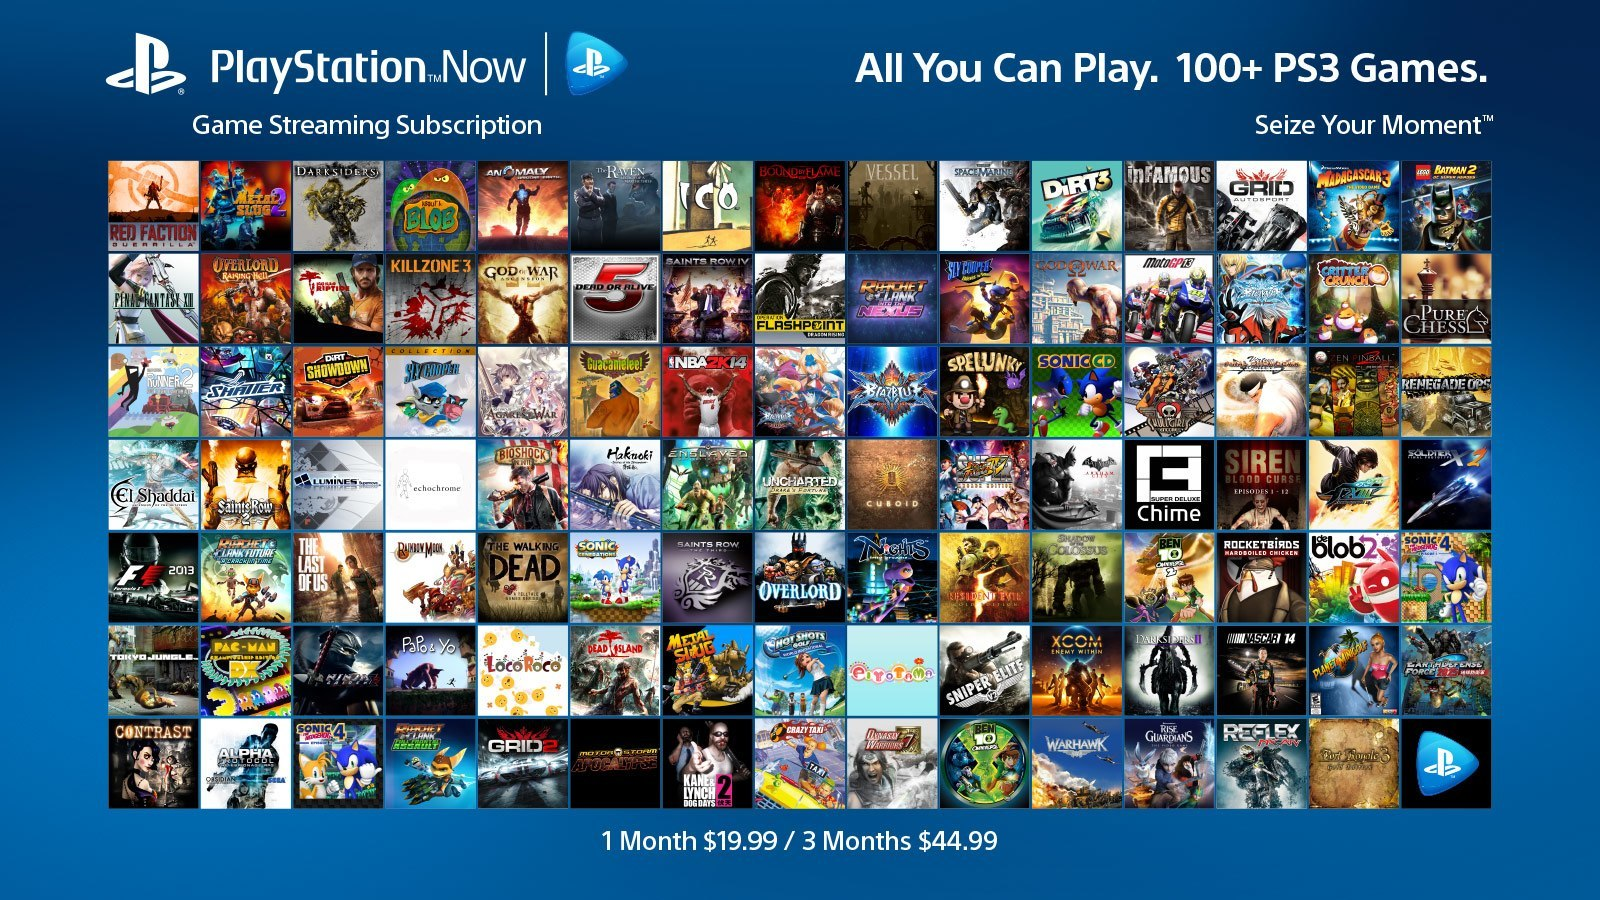 PLAYSTATION 4 GAMES Free Games For You